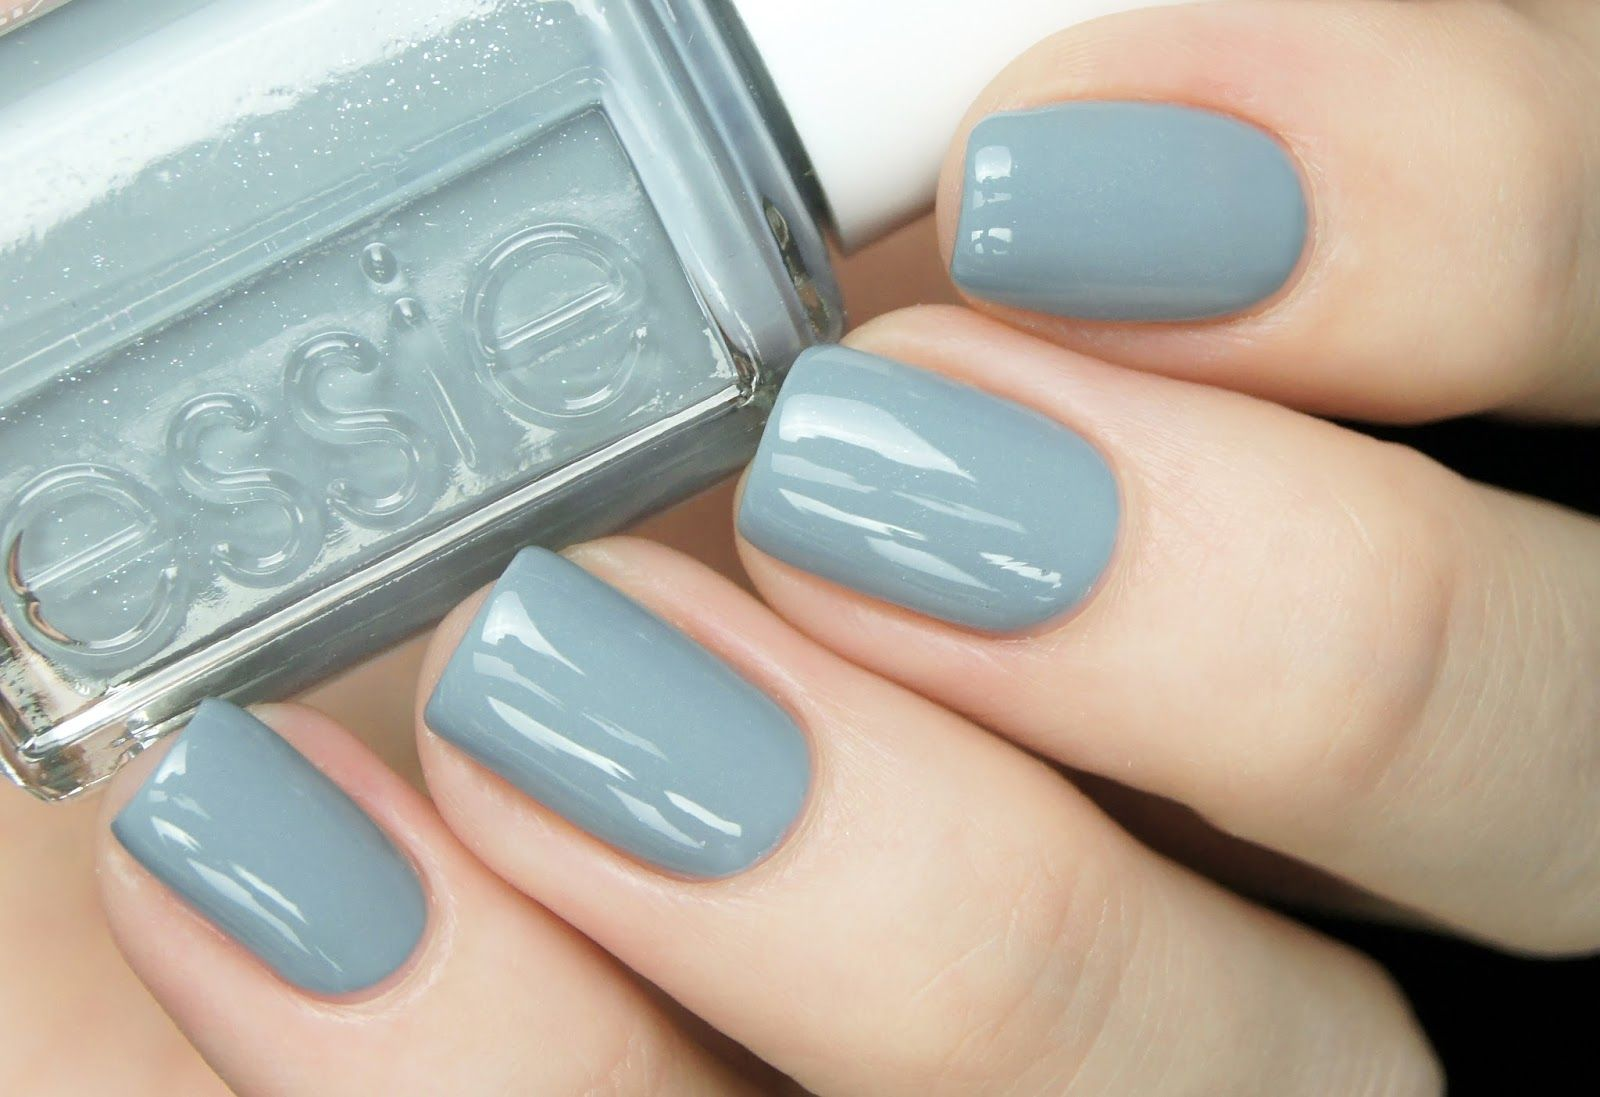 60 Nail Art Ideas To Make You Look Trendy And Stylish | Esmalte ...